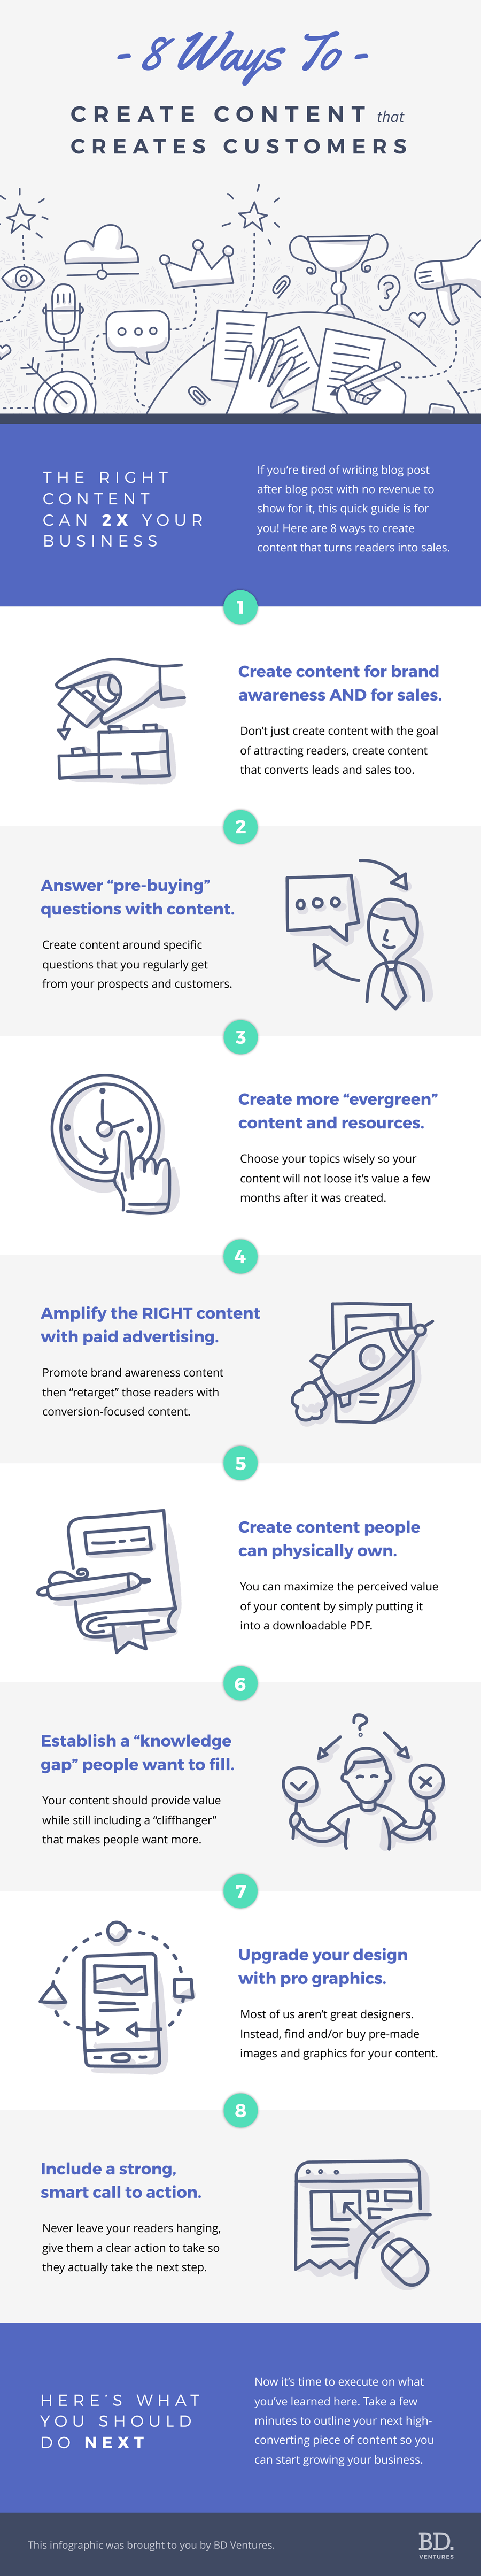 8 Ways To Create Content That Creates Customers (Infographic)